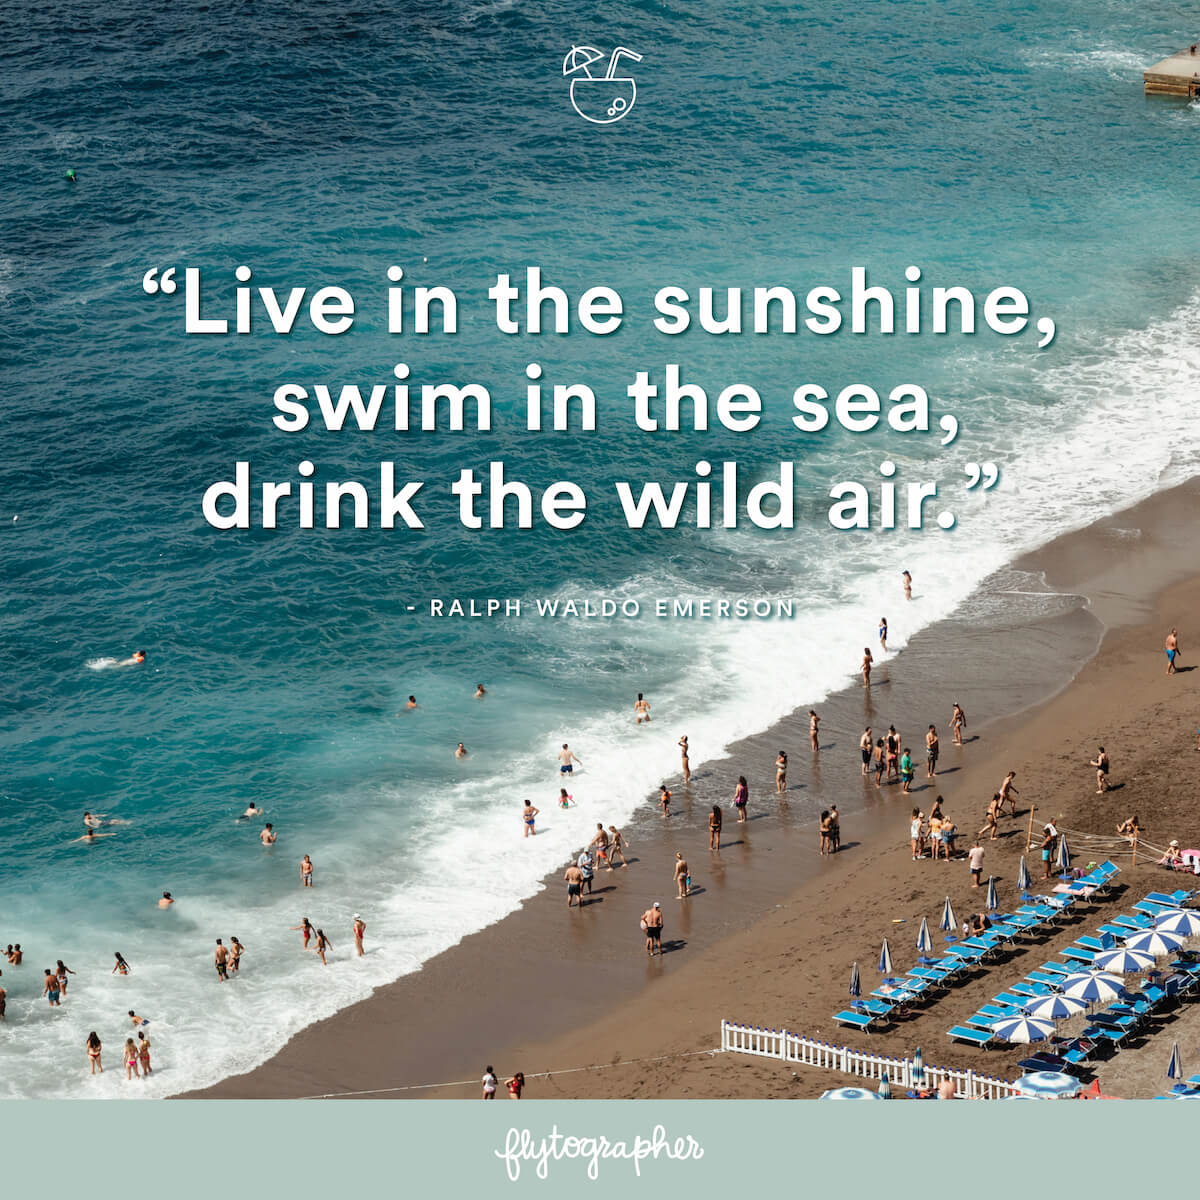 "Travel quote: ""Live in the sunshine, swim in the sea, drink the wild air"" - Ralph Waldo Emerson"